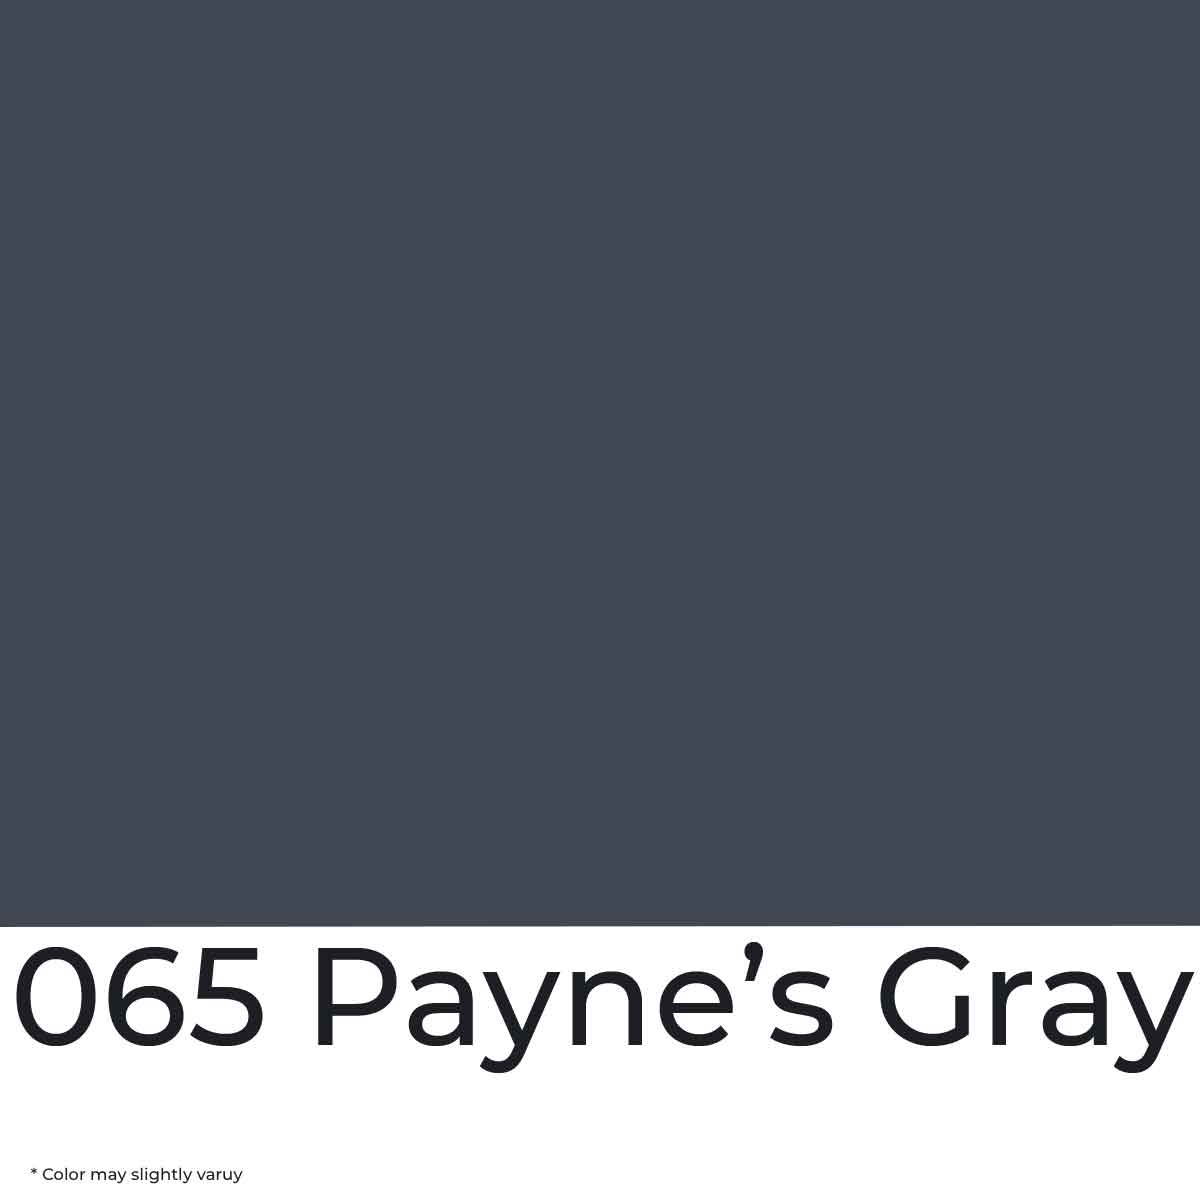 Buy Daler Rowney Acrylic Paint Supplies- Paynes Gray 065  from najmaonlie.com Abu dhabi, Dubai -UAE